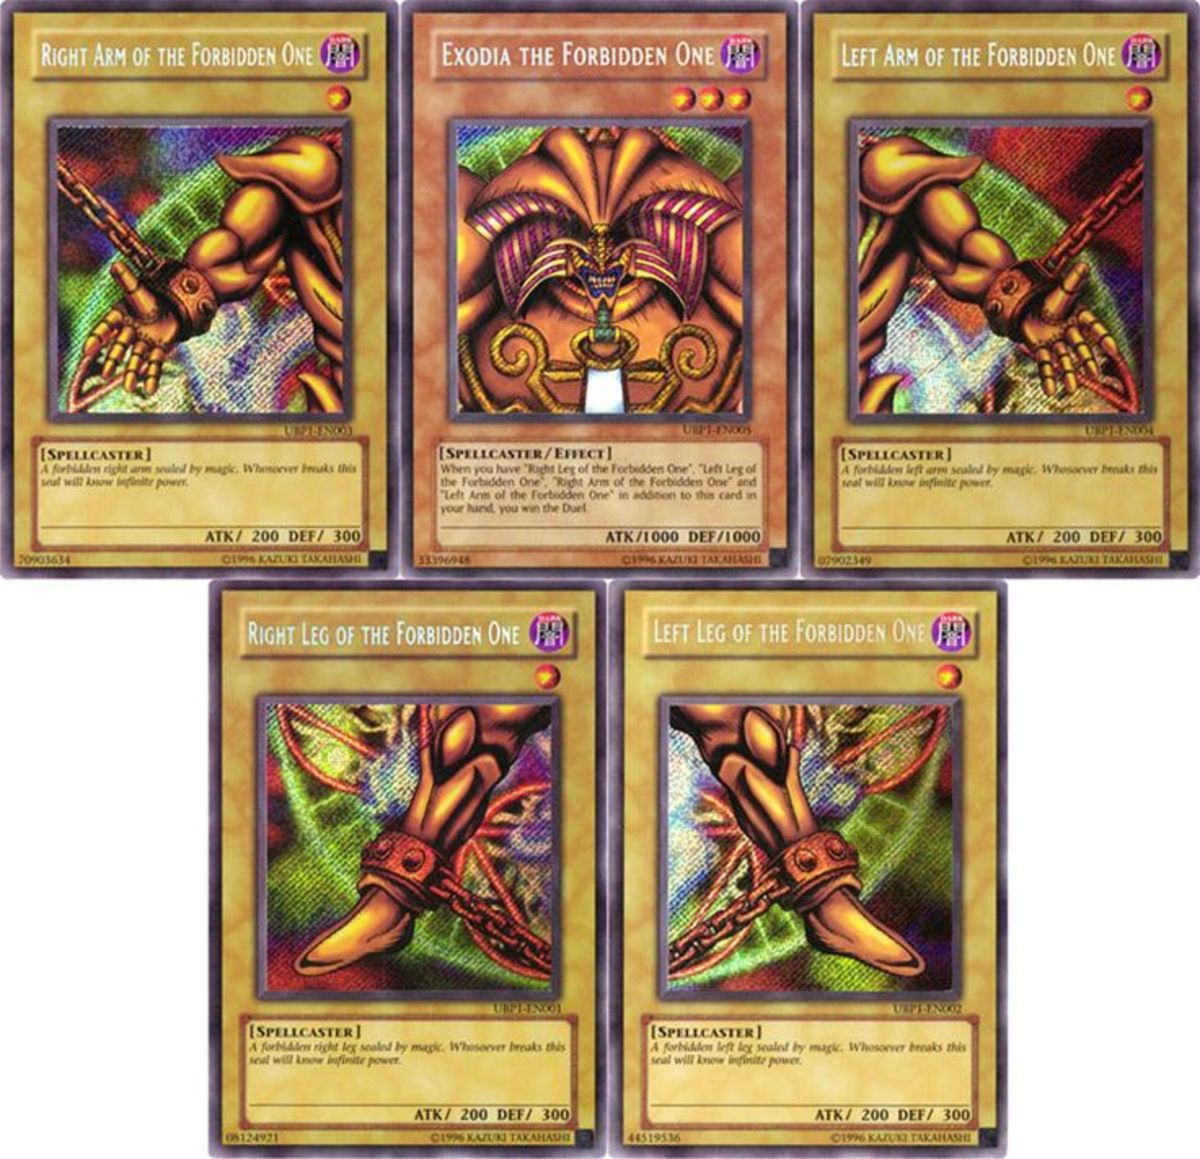 A Comprehensive Guide on How to Buy Yu-Gi-Oh Cards Online ...